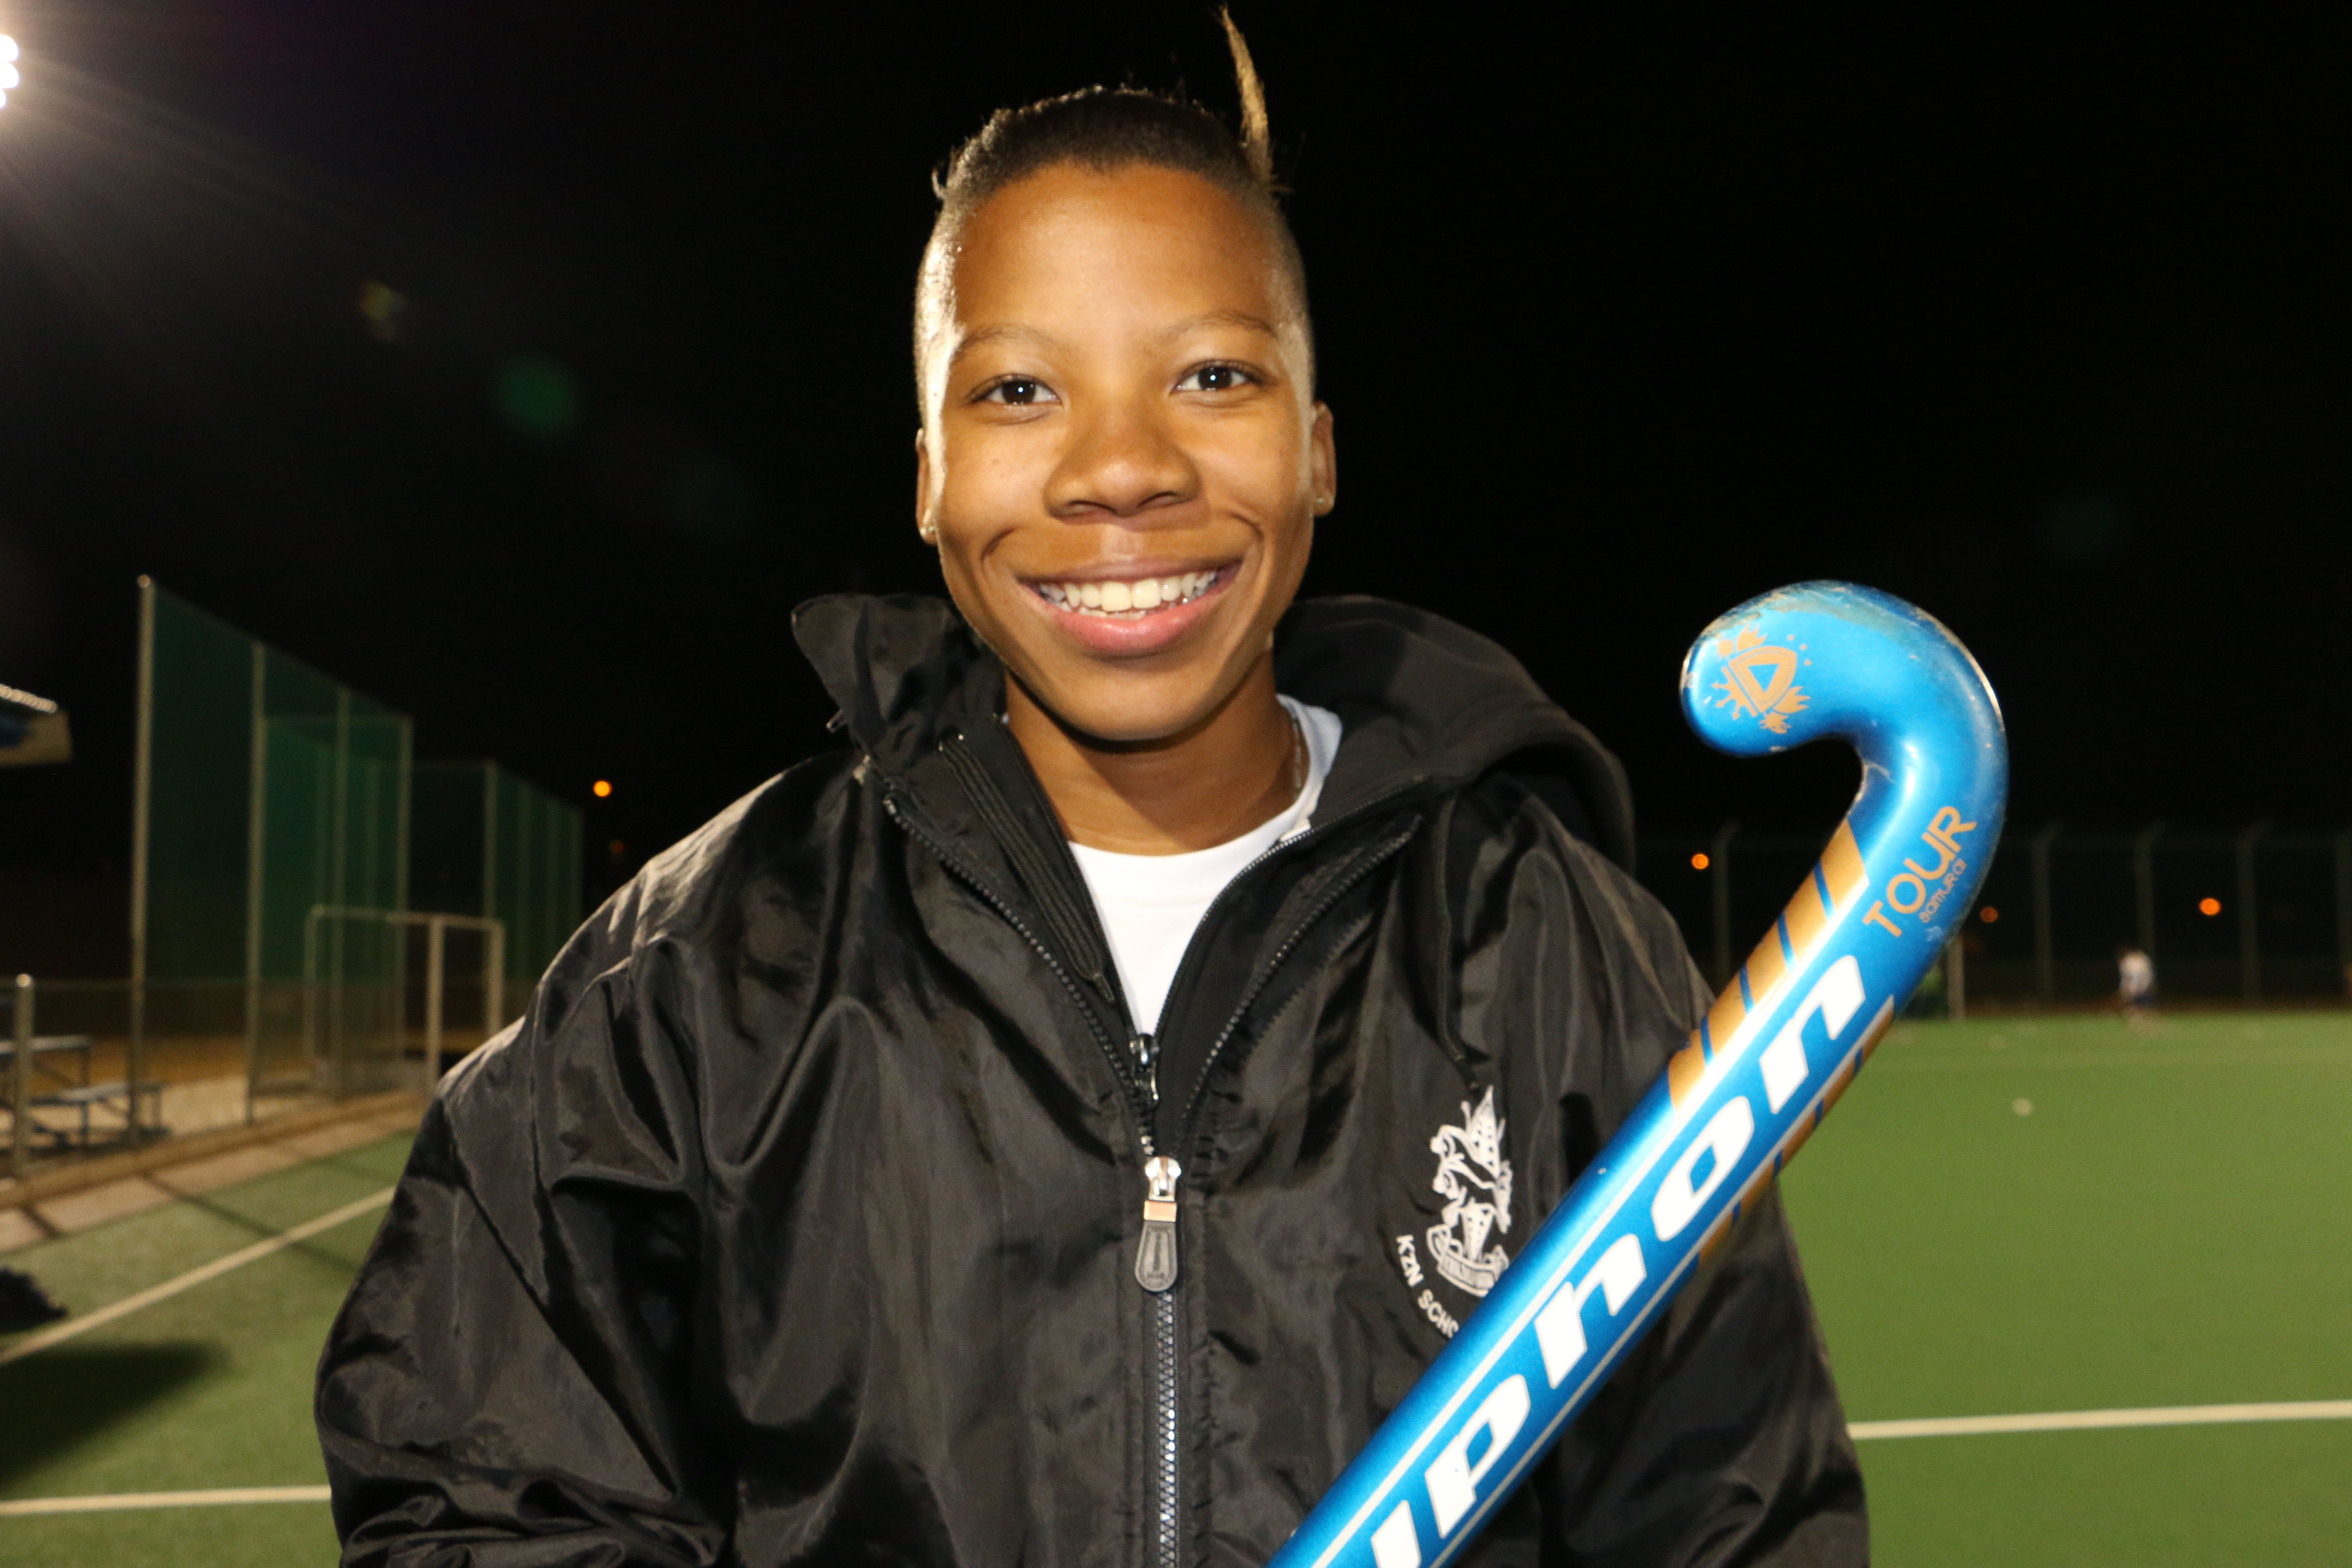 Wits hockey player to represent SA in Chile